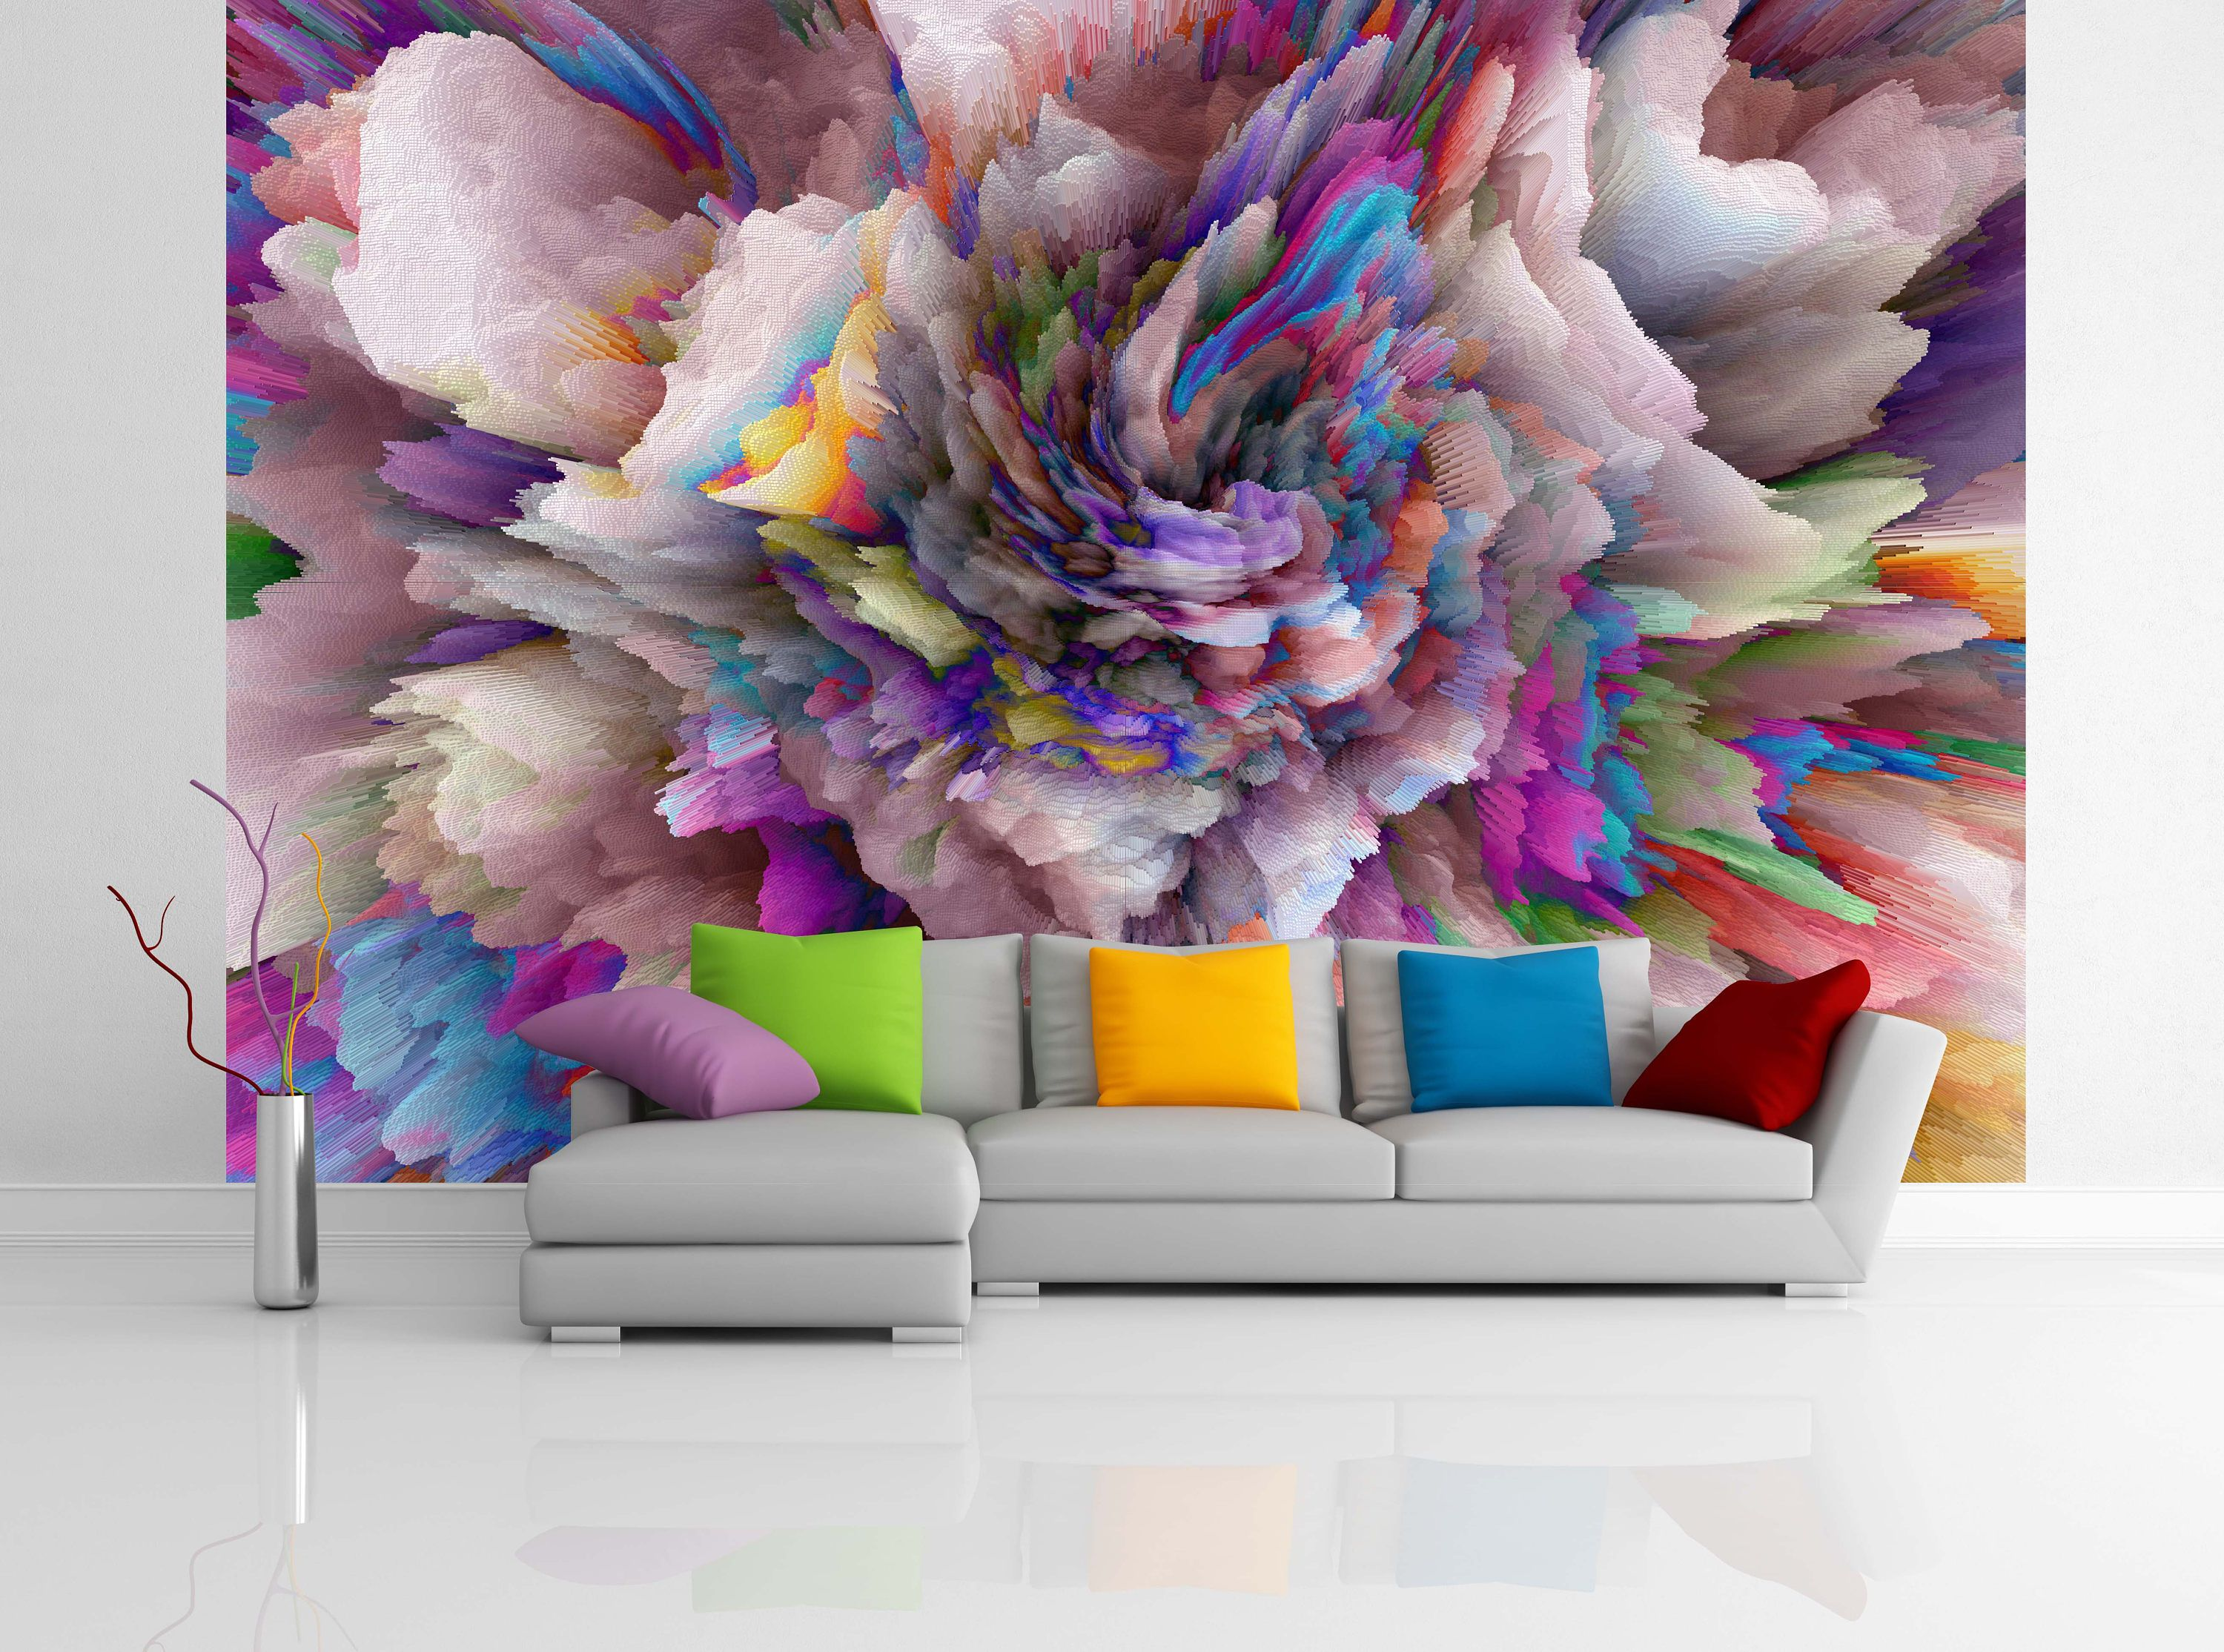 Removable Wallpaper Mural Peel Stick Abstract Background Squares Removable Wallpaper Mural Wallpaper Mural